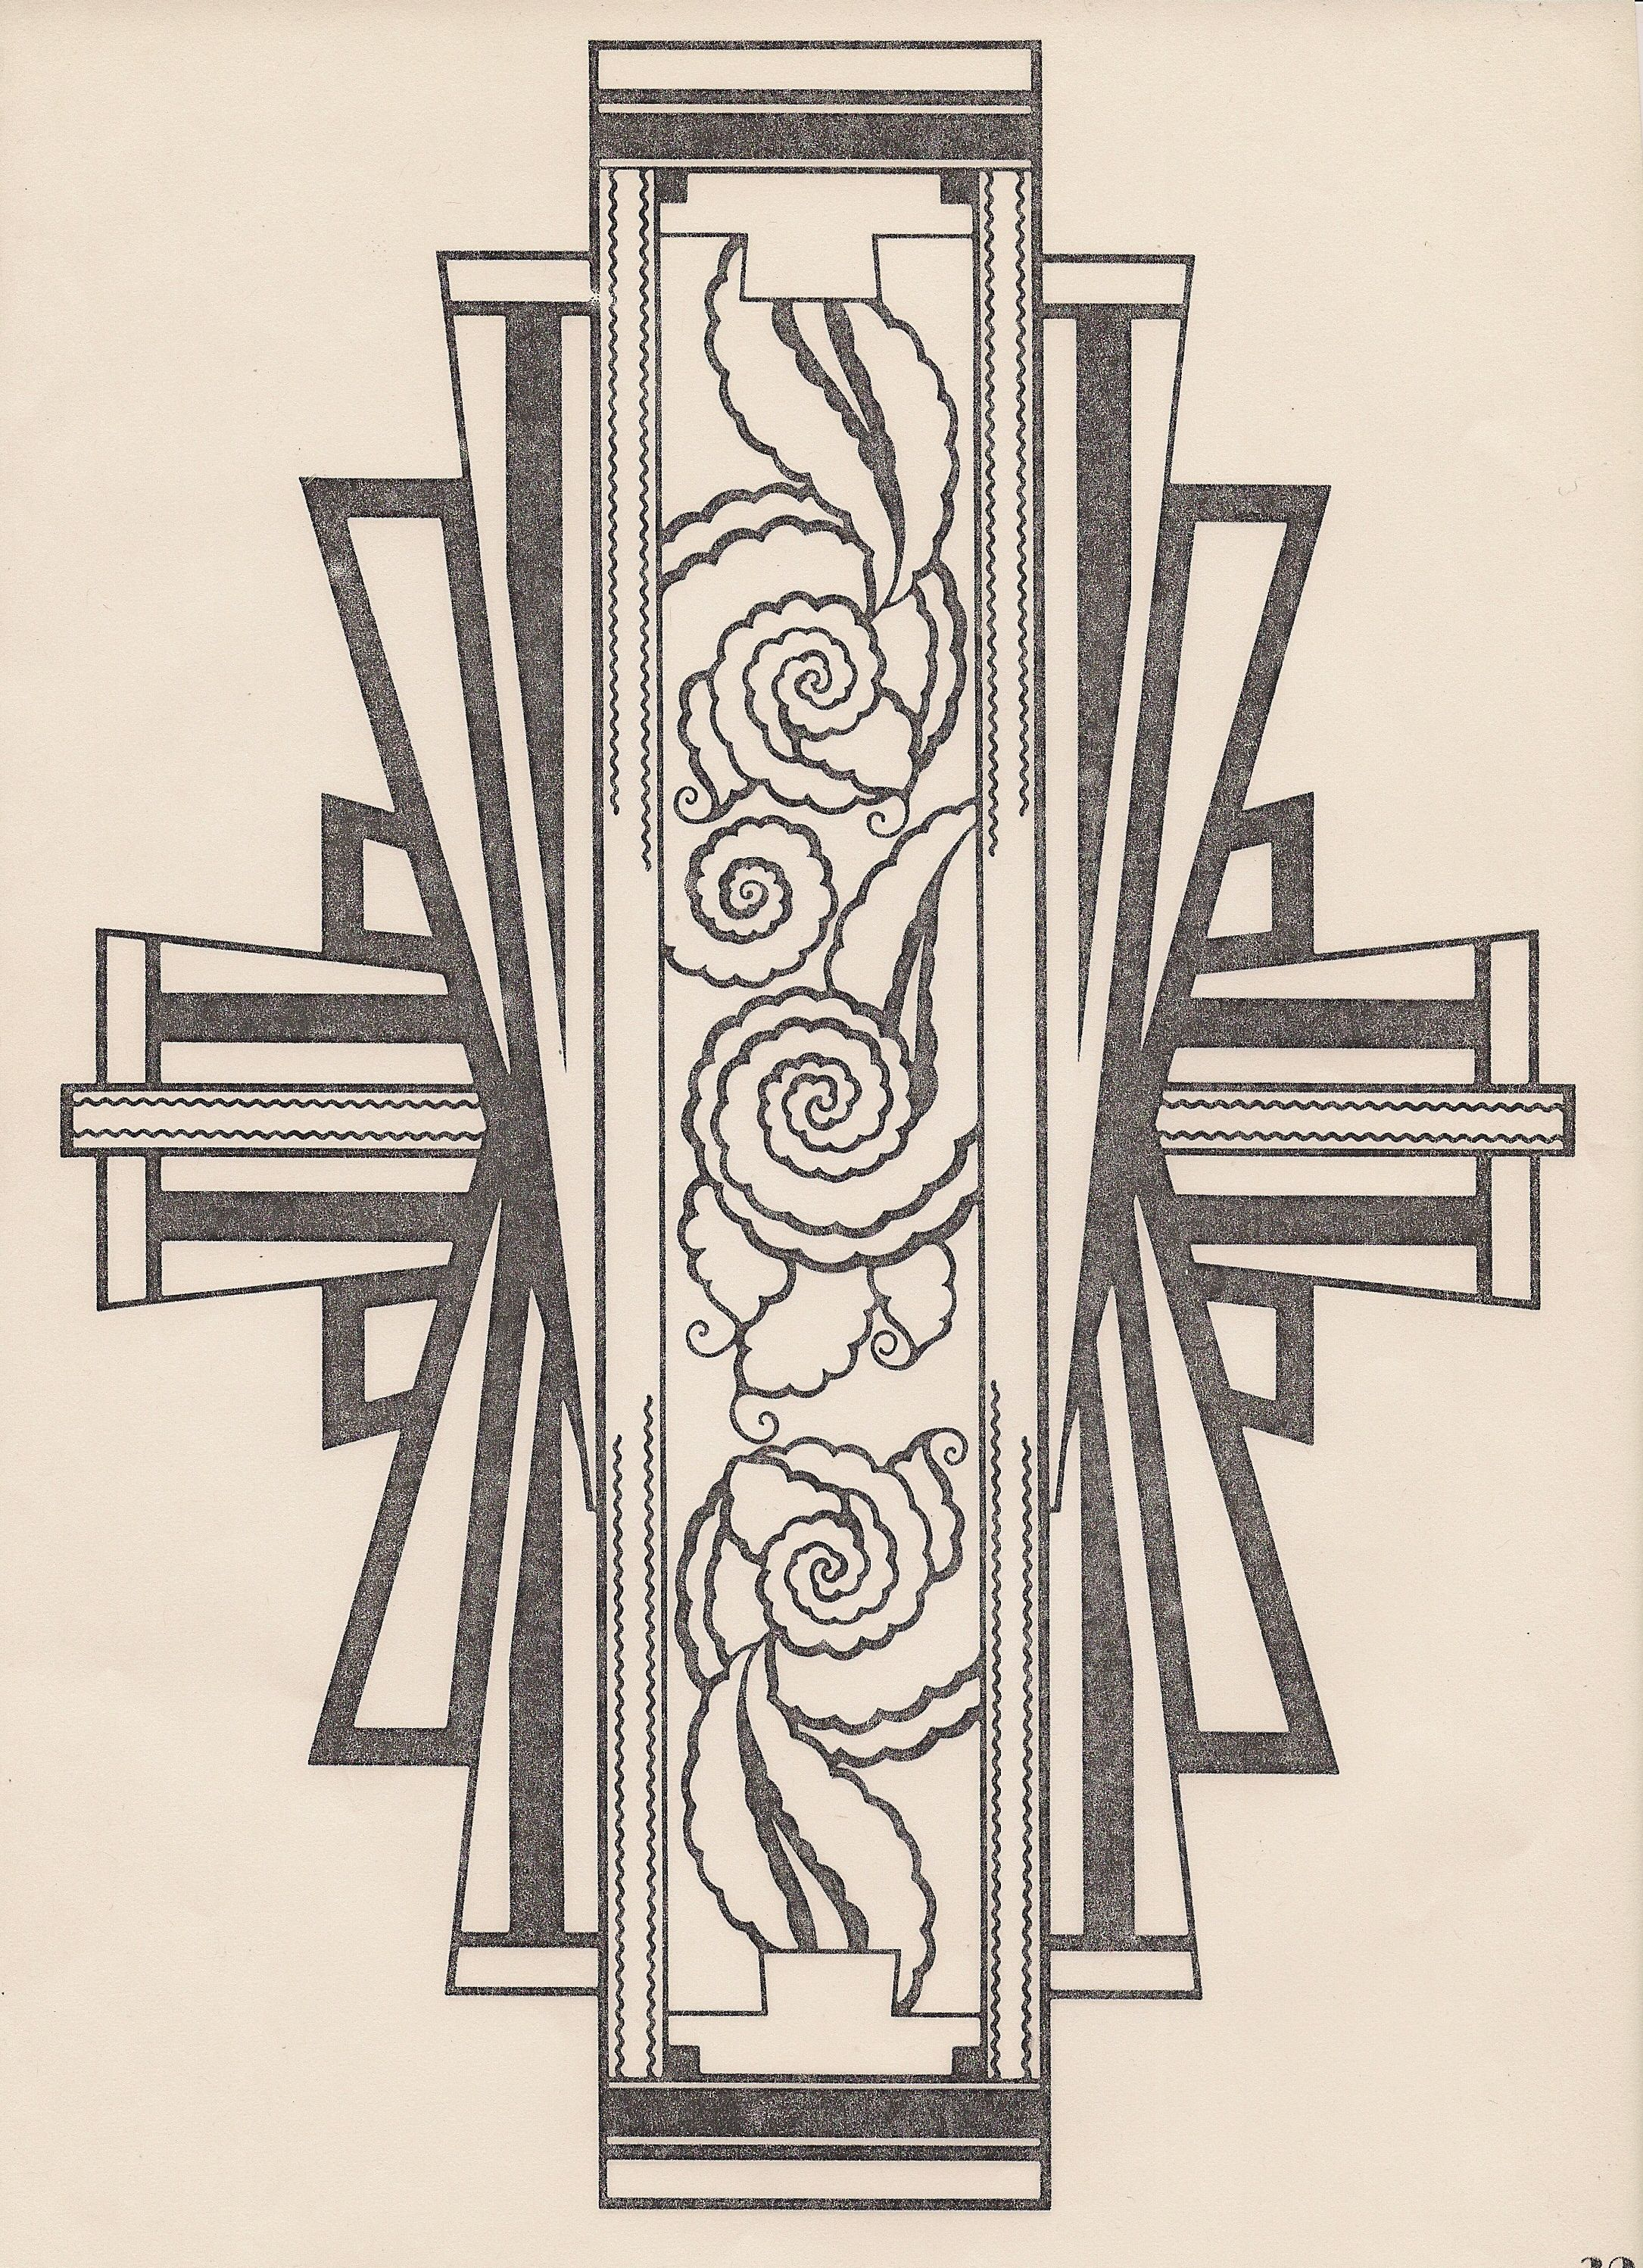 Designer Deko Art Deco Design Found On Decornow Art Deco